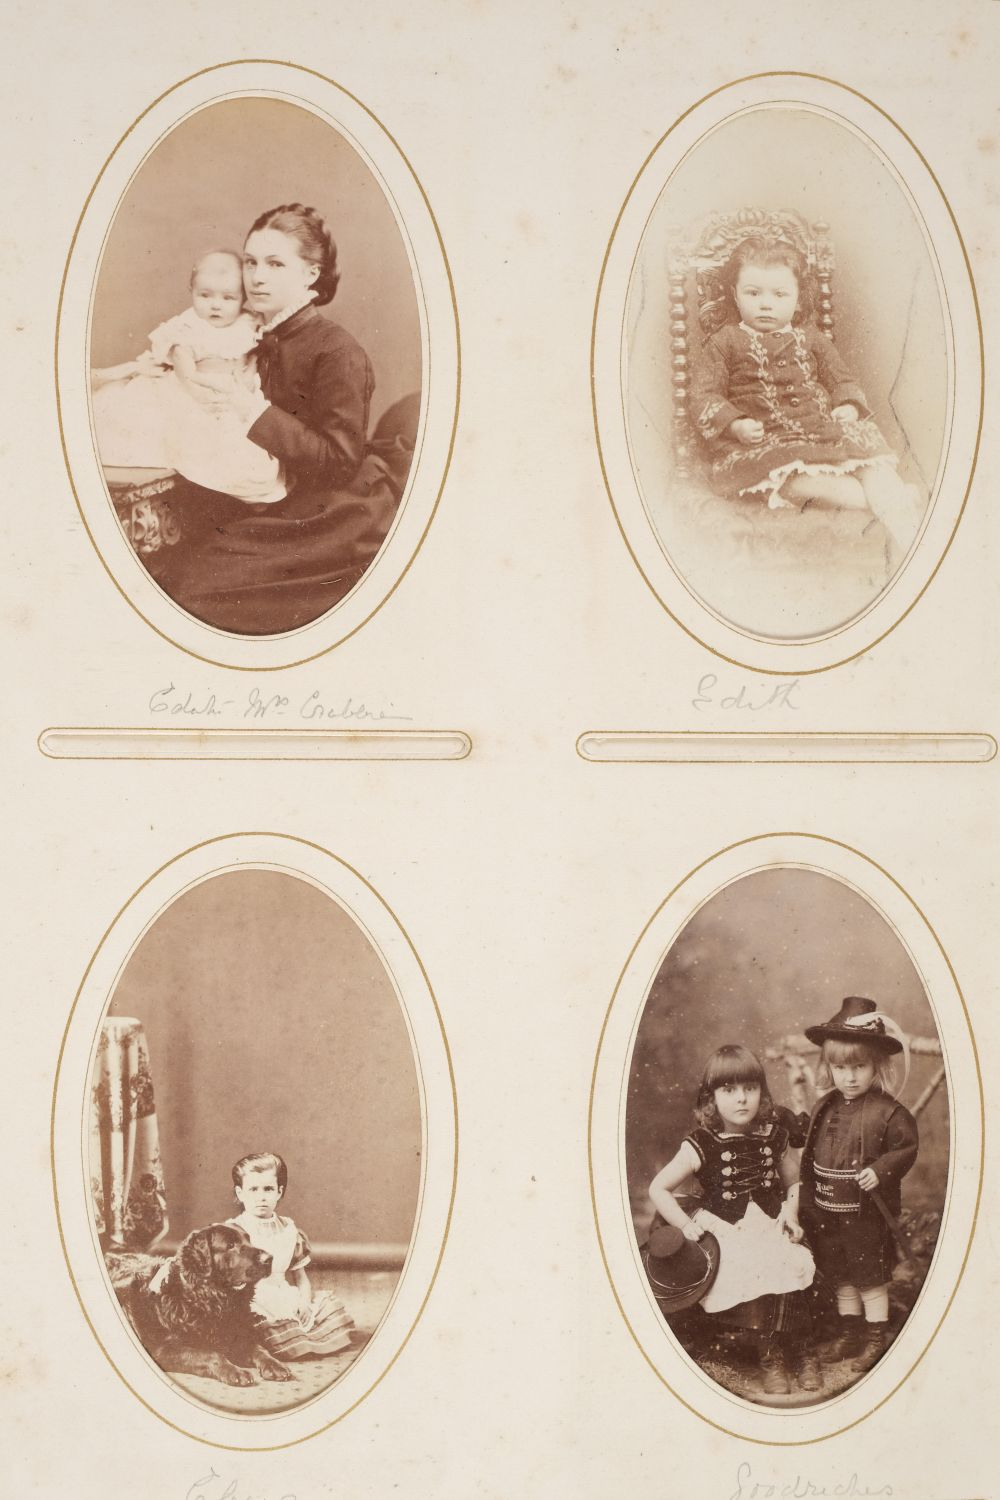 * Cartes de visite. A group of 3 albums of cartes de visite and cabinet cards - Image 17 of 26